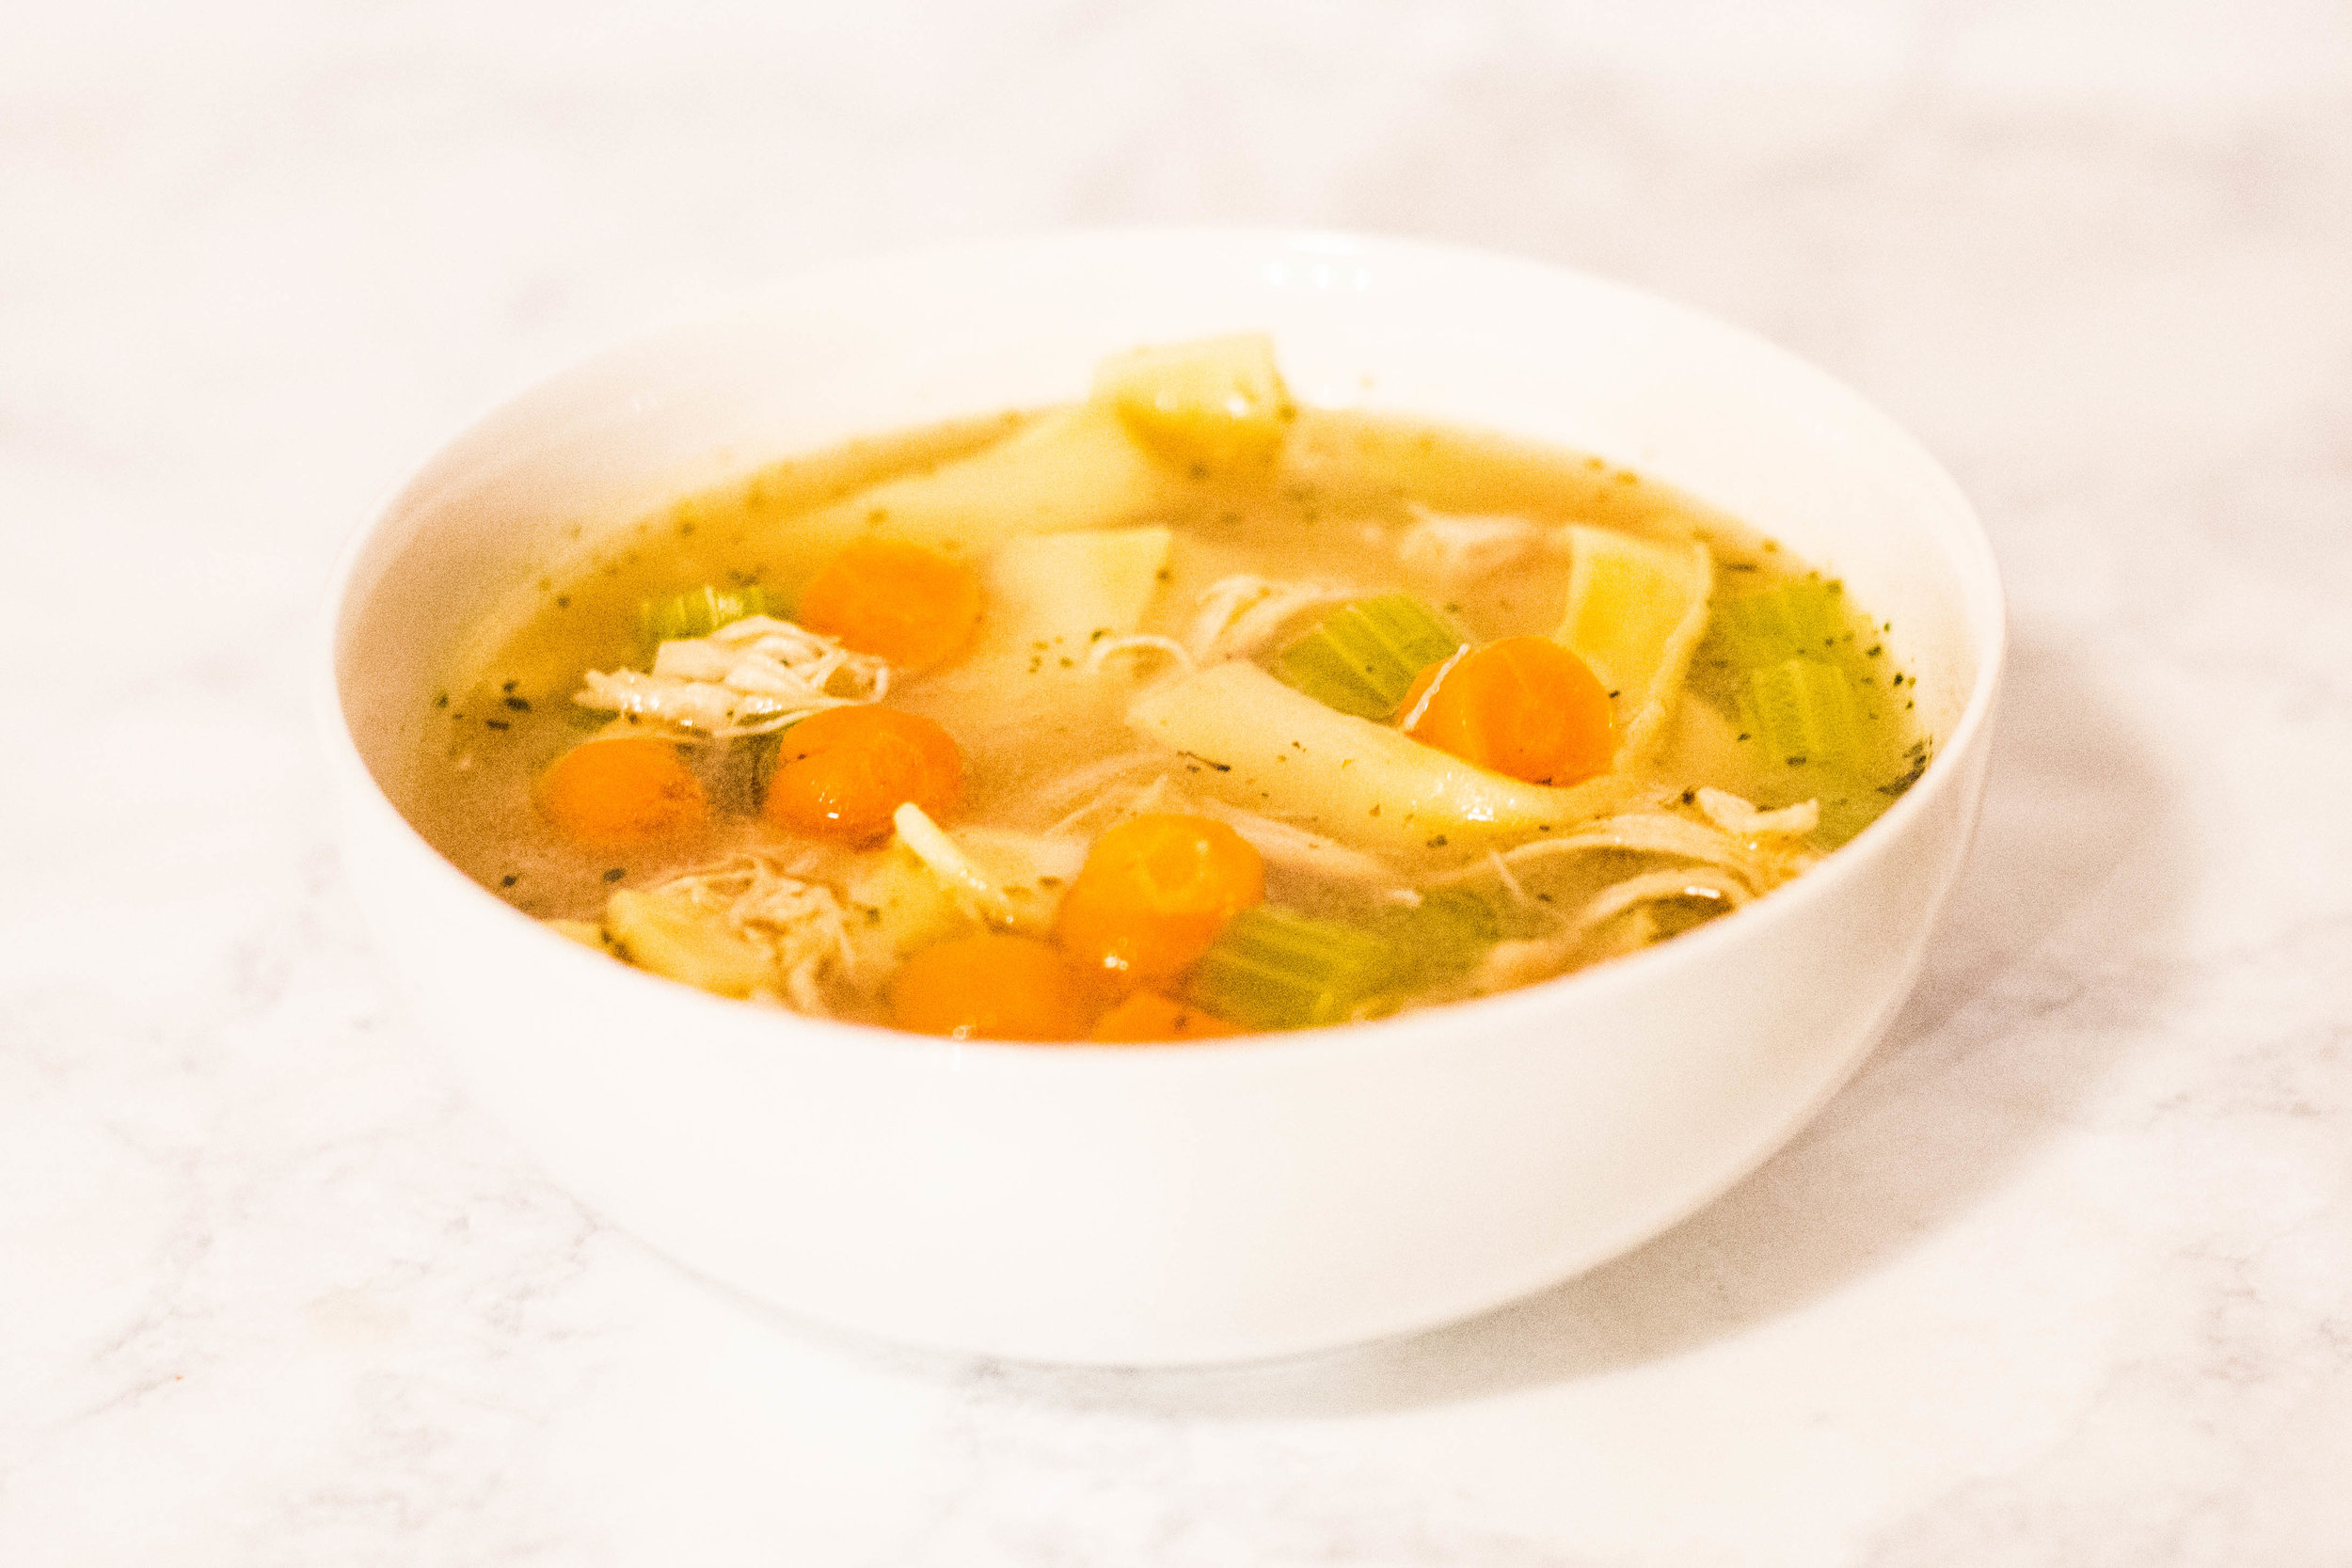 Super simple homemade chicken noodle soup recipe with instructions to cook it using a pressure cooker (like an Instant Pot) and a slow cooker || Hayley Fiser || thehayleyfiser.com